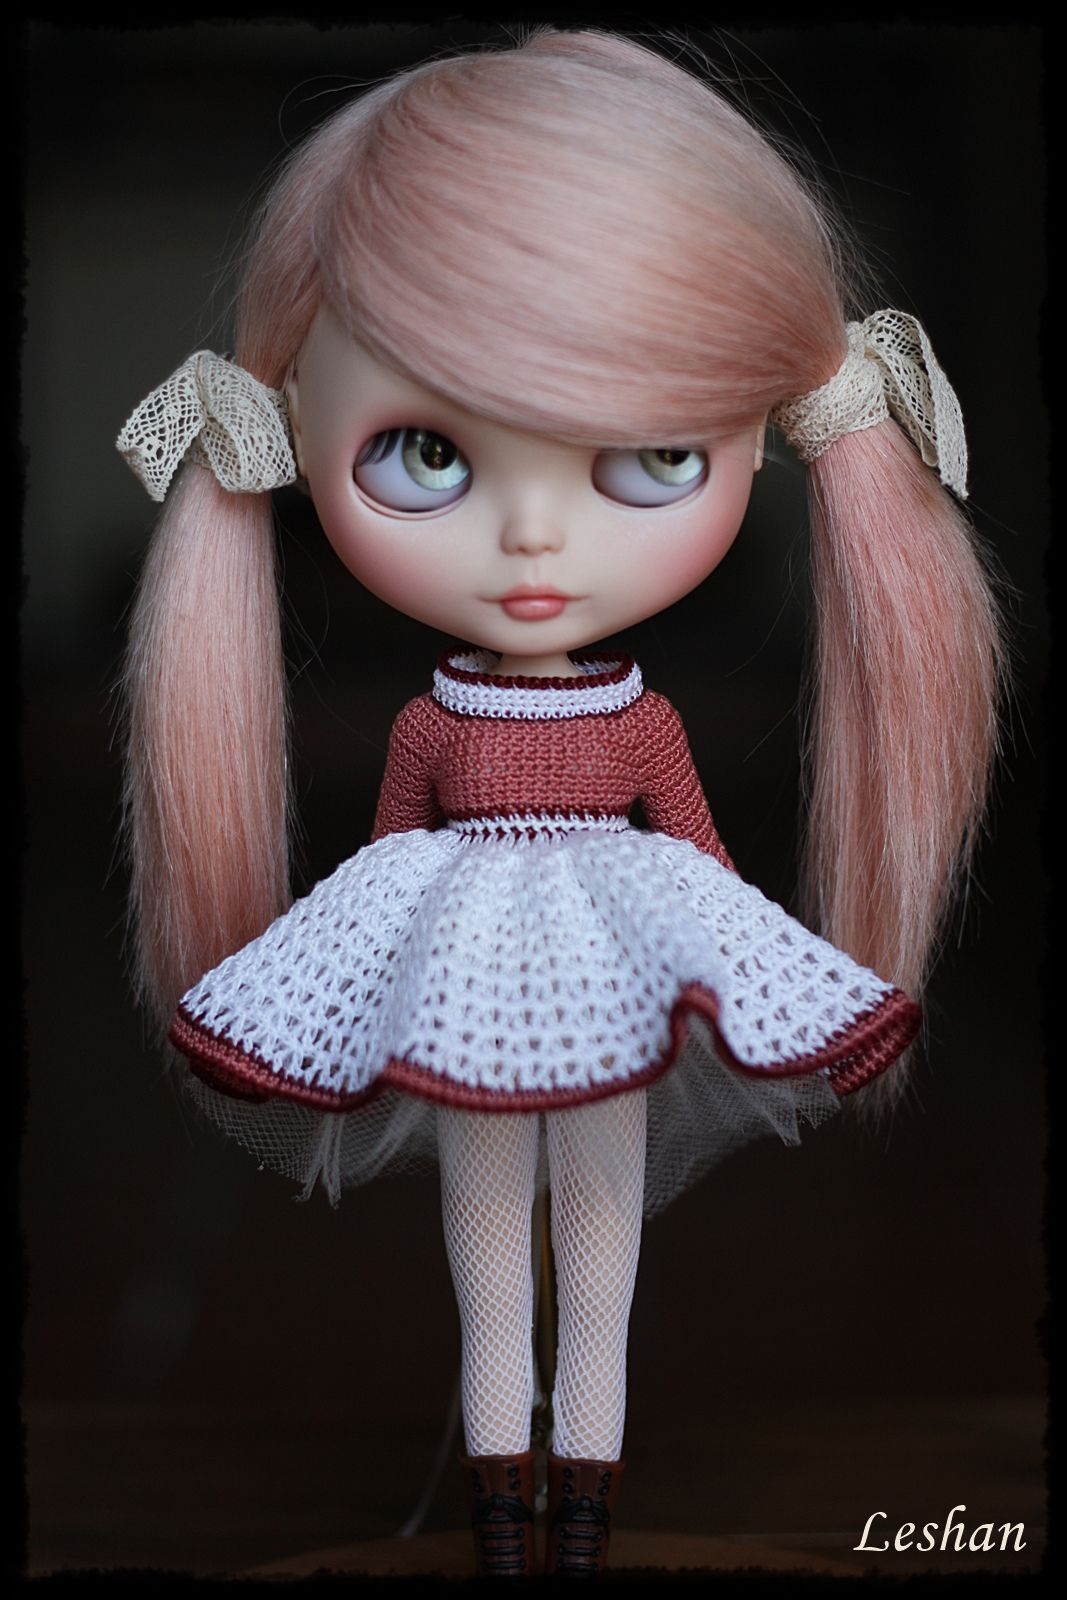 New style with long sleeves dolls bjd and big eyes margaret keane